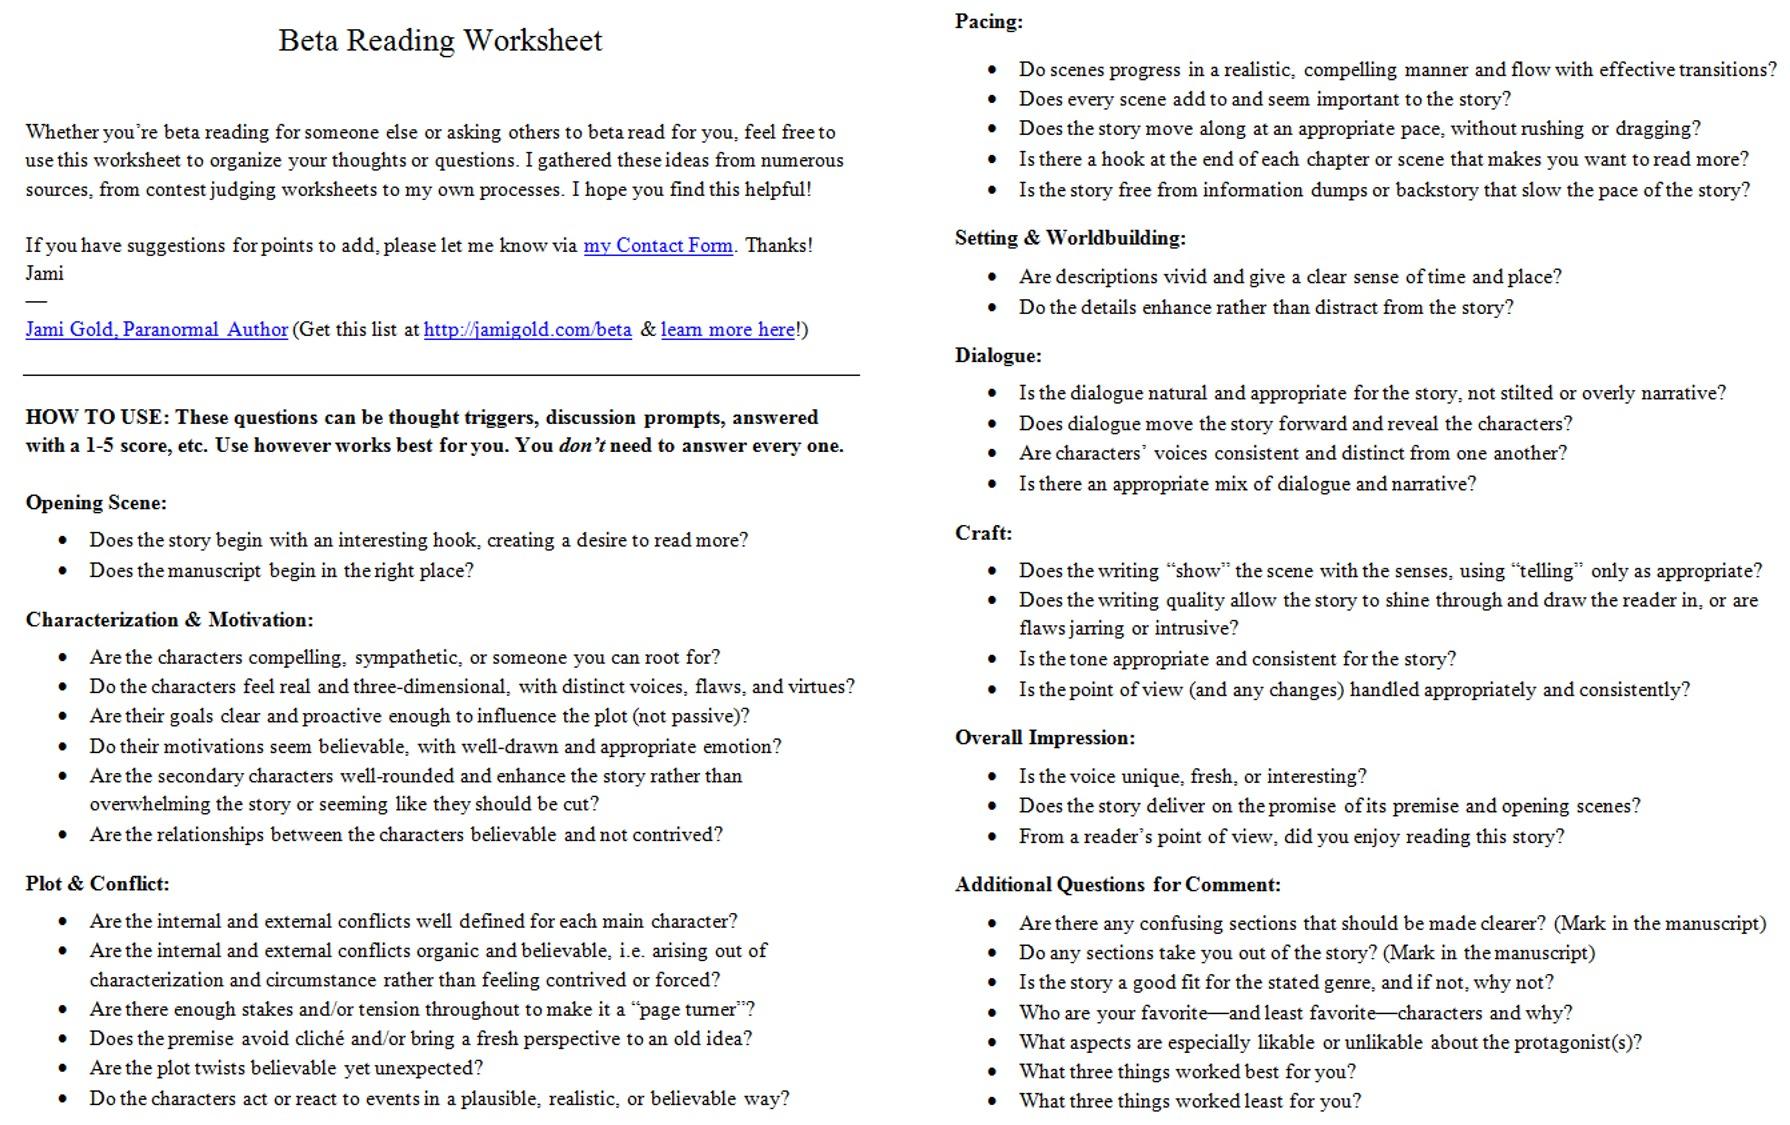 Proatmealus  Outstanding Worksheets For Writers  Jami Gold Paranormal Author With Interesting Screen Shot Of The Twopage Beta Reading Worksheet With Appealing Math Worksheets To Go Also Measuring Cups And Spoons Worksheets In Addition Prime Factor Worksheets And Junior Girl Scout Badge Worksheet As Well As Lattice Method Multiplication Worksheet Additionally Times Tables Worksheets Free From Jamigoldcom With Proatmealus  Interesting Worksheets For Writers  Jami Gold Paranormal Author With Appealing Screen Shot Of The Twopage Beta Reading Worksheet And Outstanding Math Worksheets To Go Also Measuring Cups And Spoons Worksheets In Addition Prime Factor Worksheets From Jamigoldcom